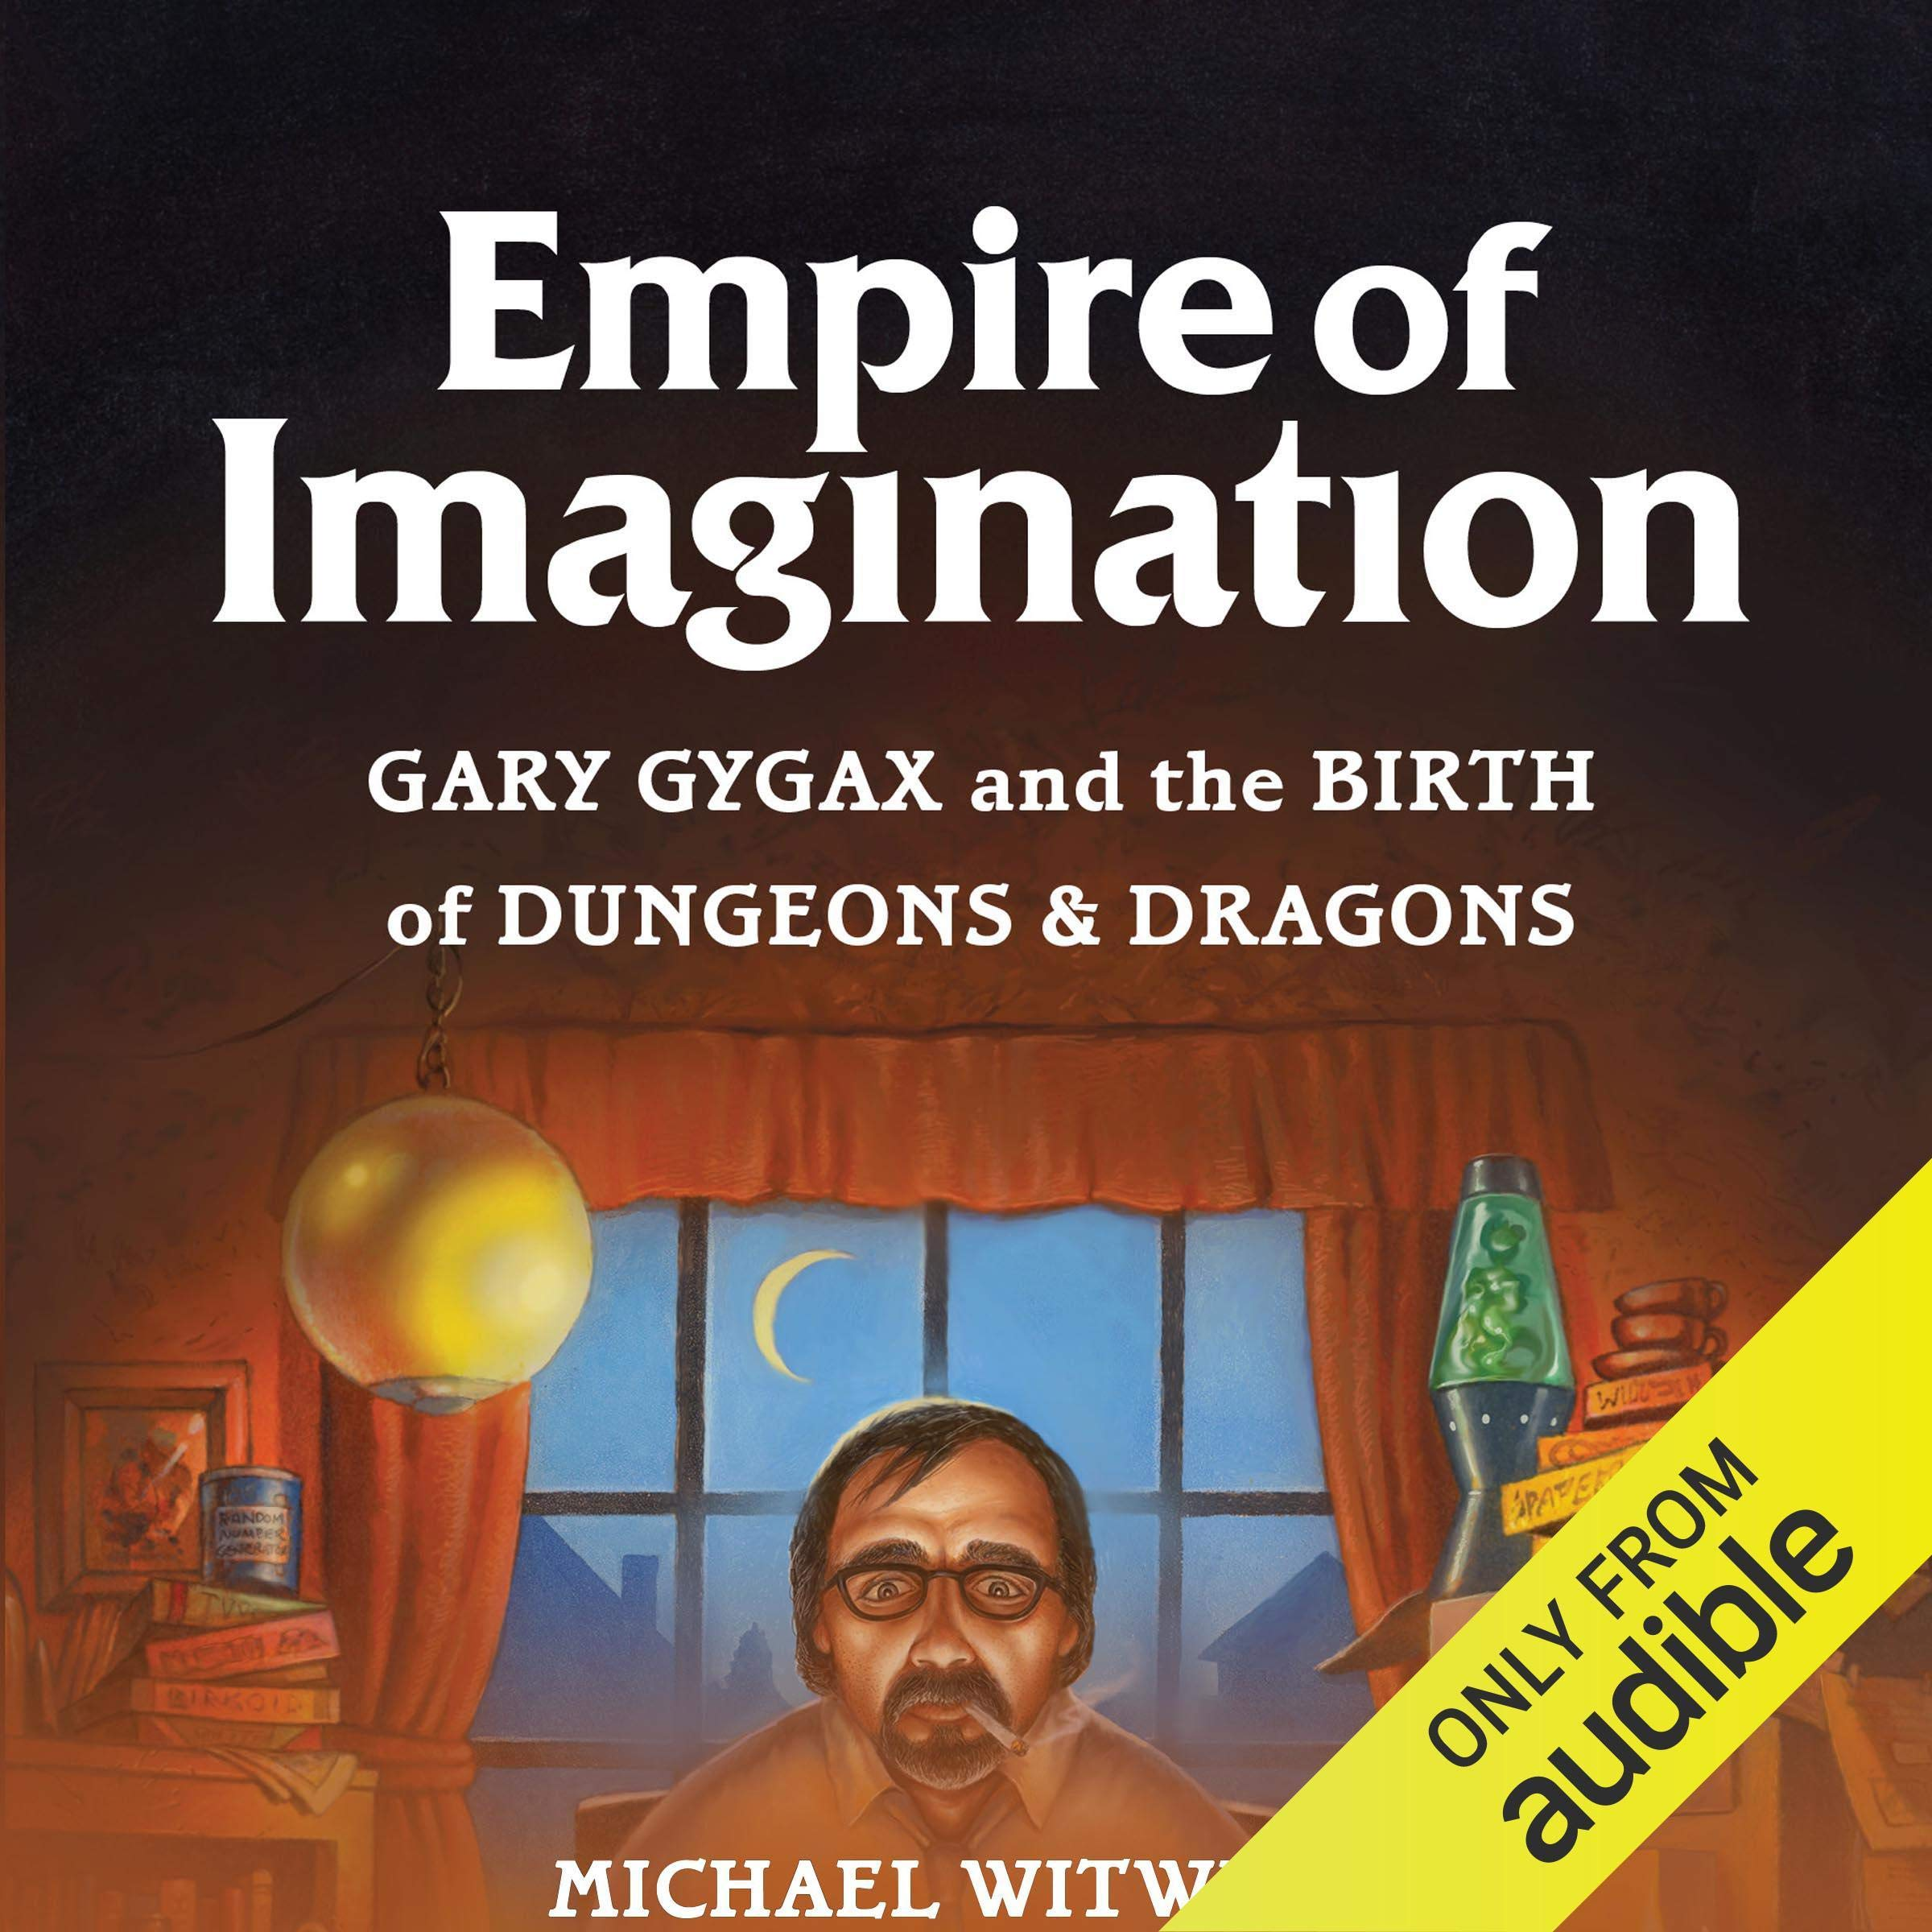 Image OfEmpire Of Imagination: Gary Gygax And The Birth Of Dungeons & Dragons